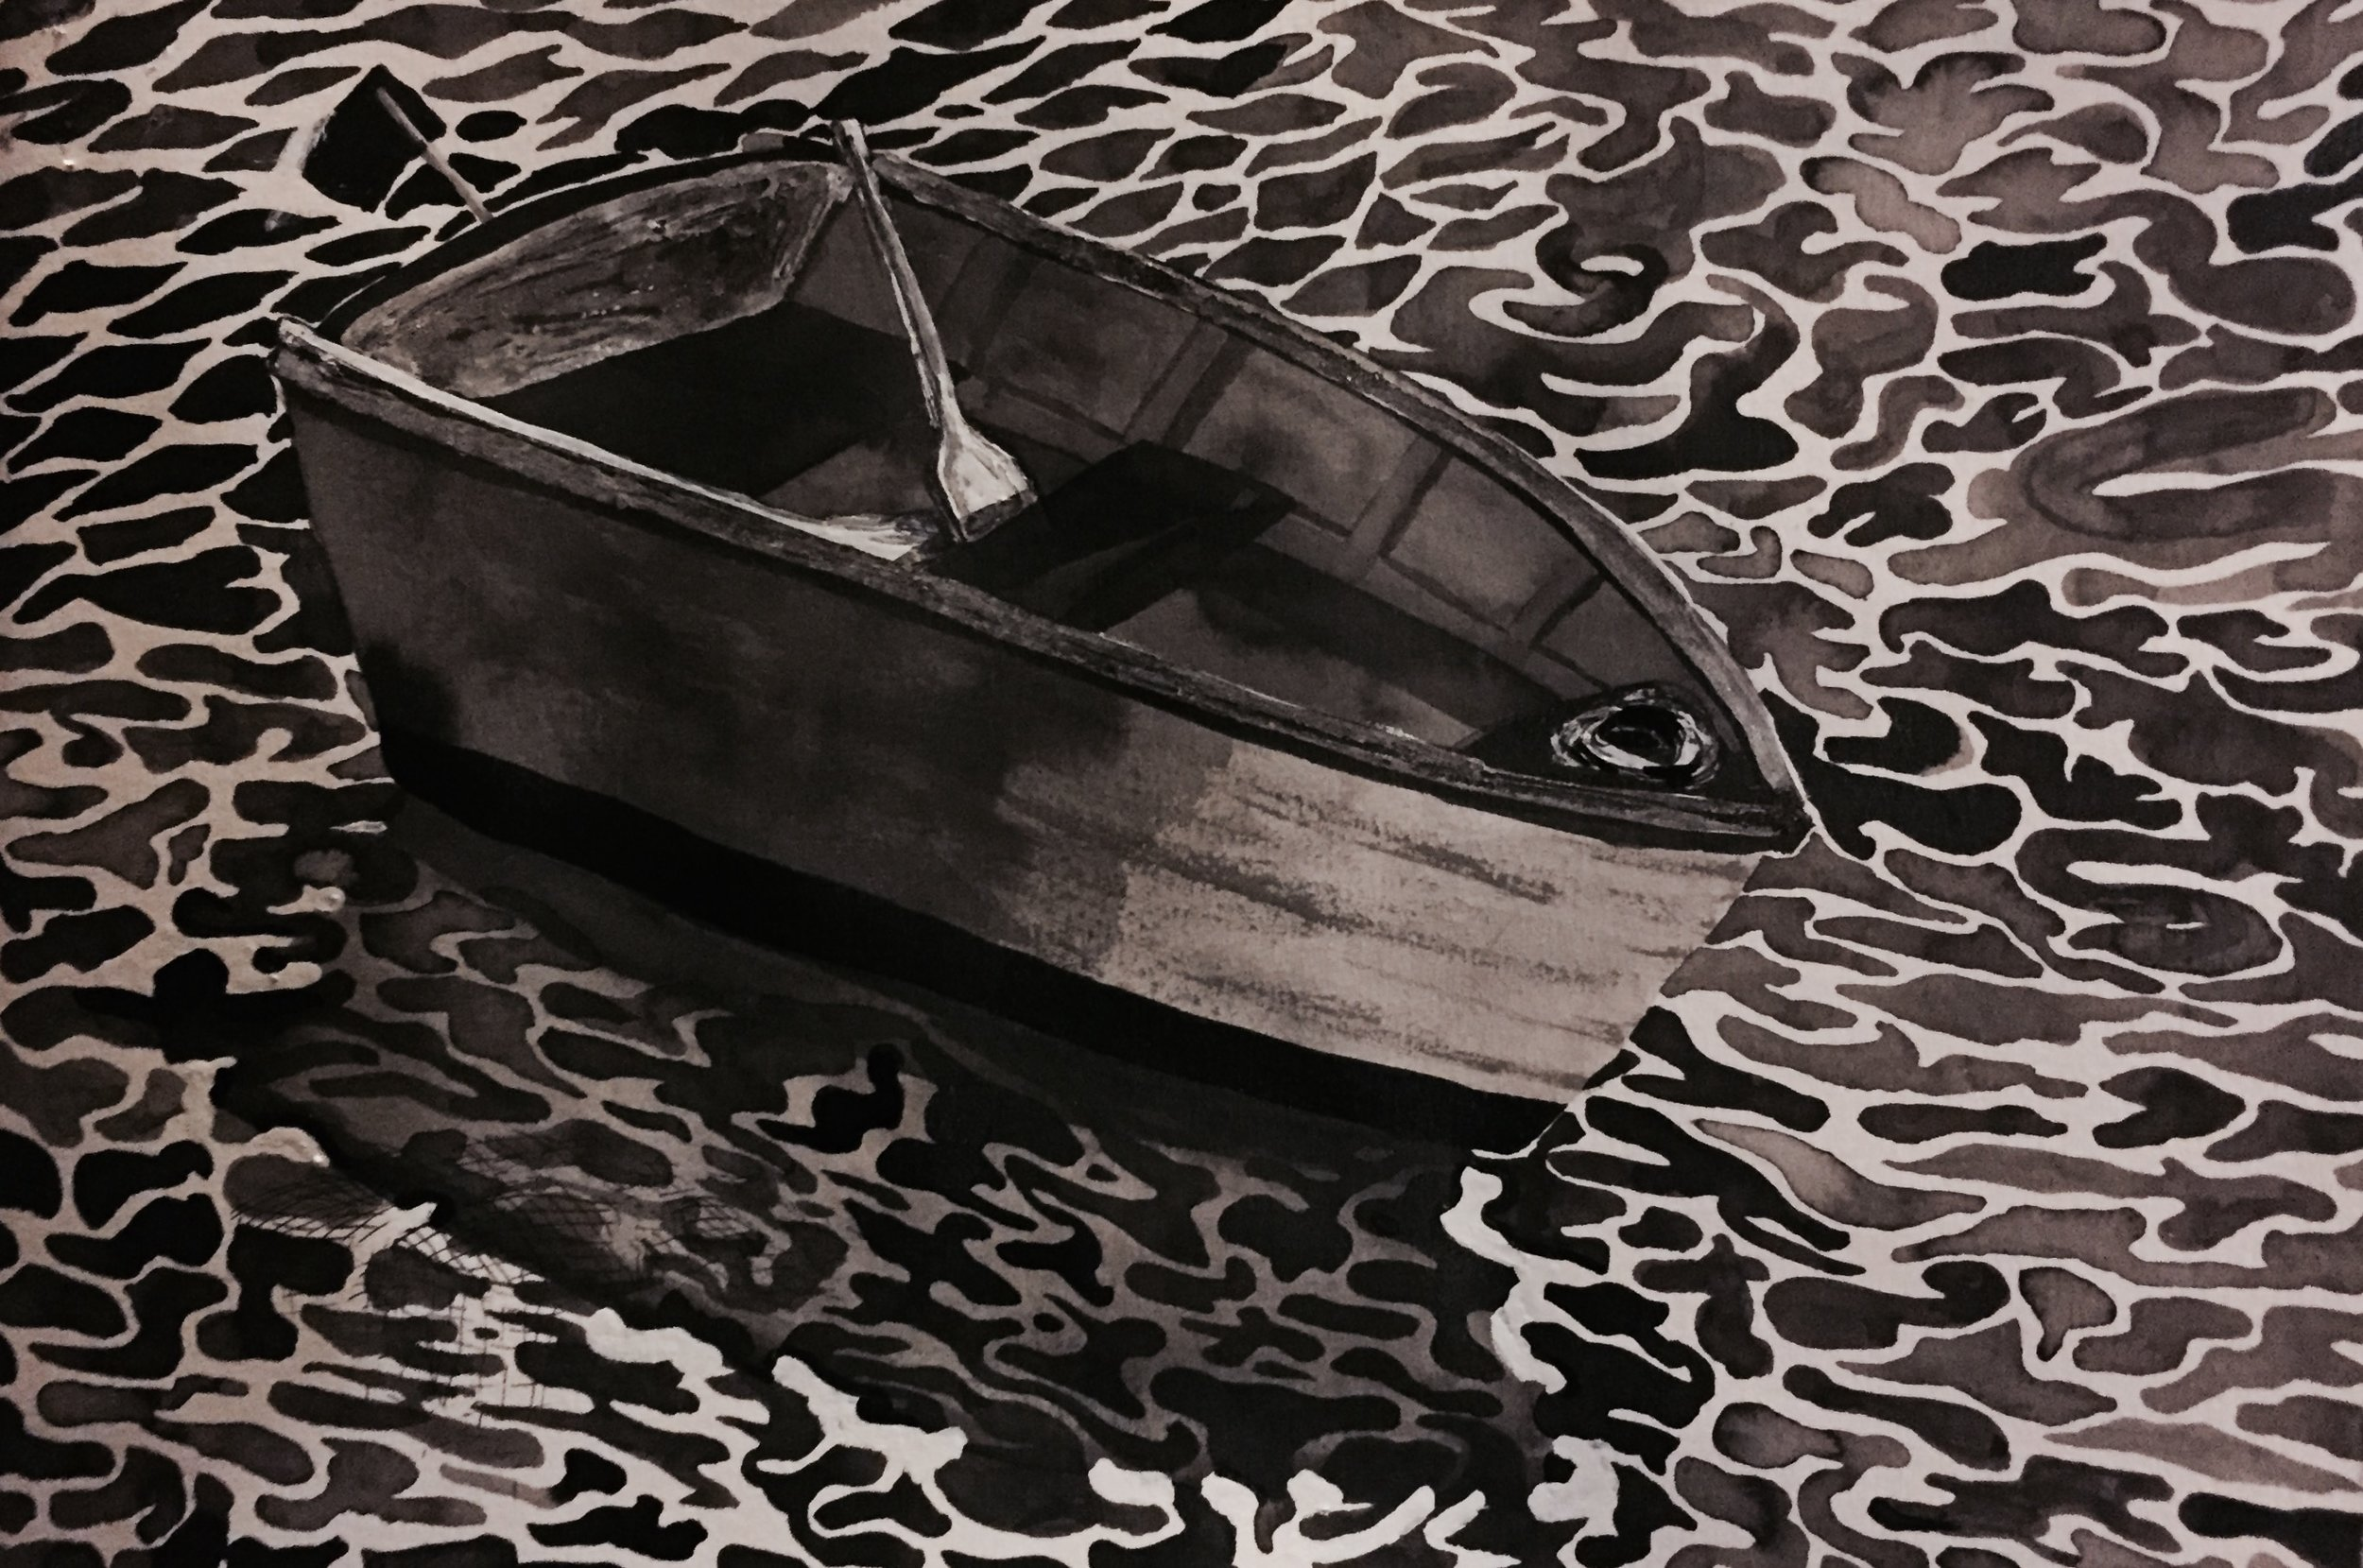 Day 1: Model boat that I bought at a garage sale, and some experiments with painting water in ink. You can tell I started in the upper left quadrant and got better as I made my way around...